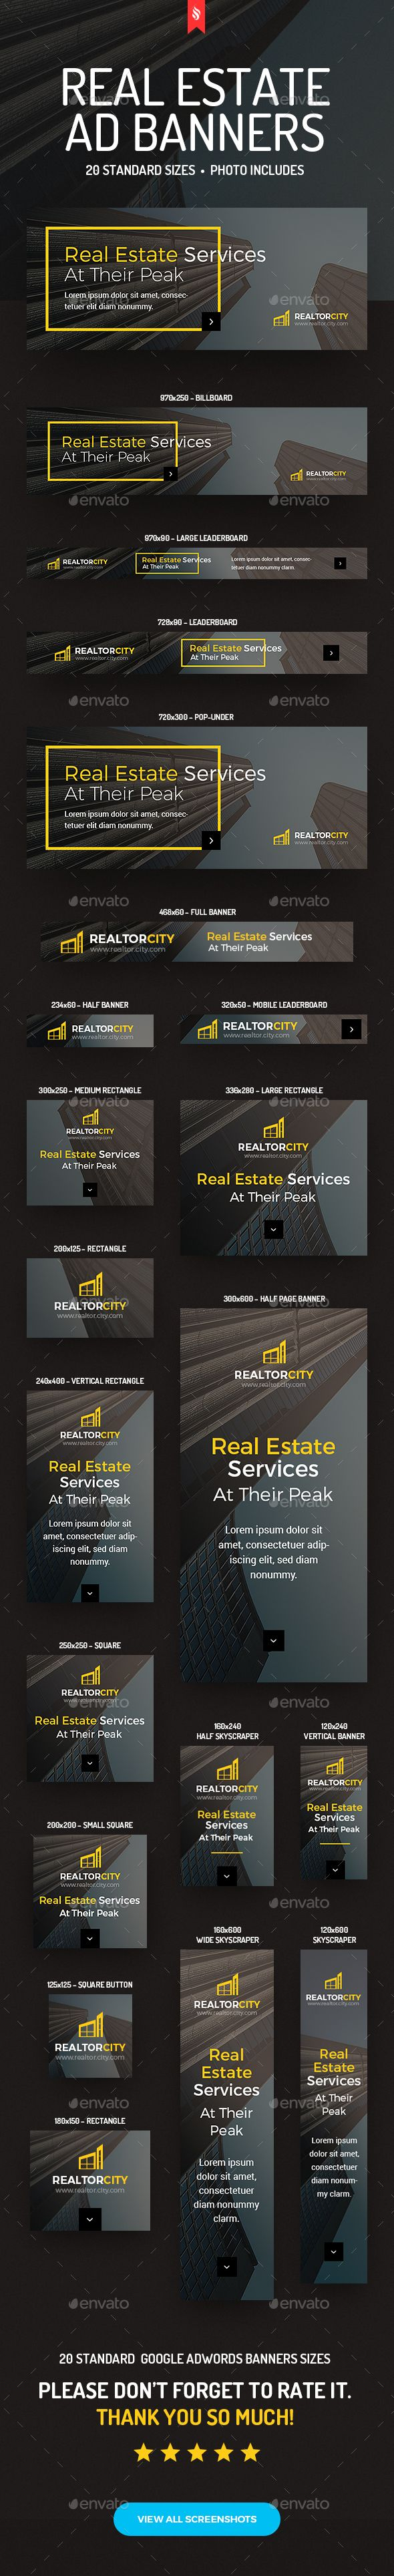 RealtorCity  Real Estate Ad Banners — Photoshop PSD #city #web ad banners • Available here → https://graphicriver.net/item/realtorcity-real-estate-ad-banners/14440055?ref=pxcr